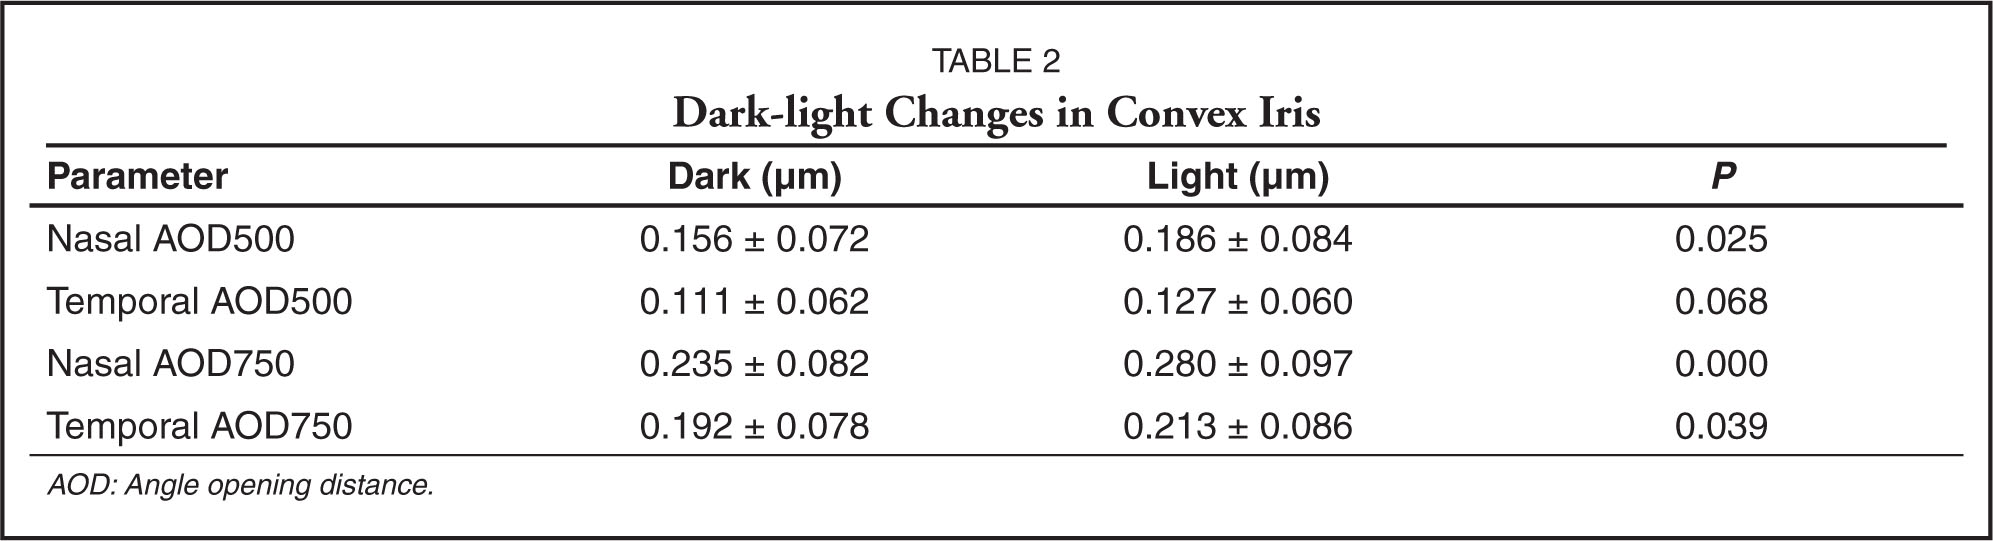 Dark-Light Changes in Convex Iris